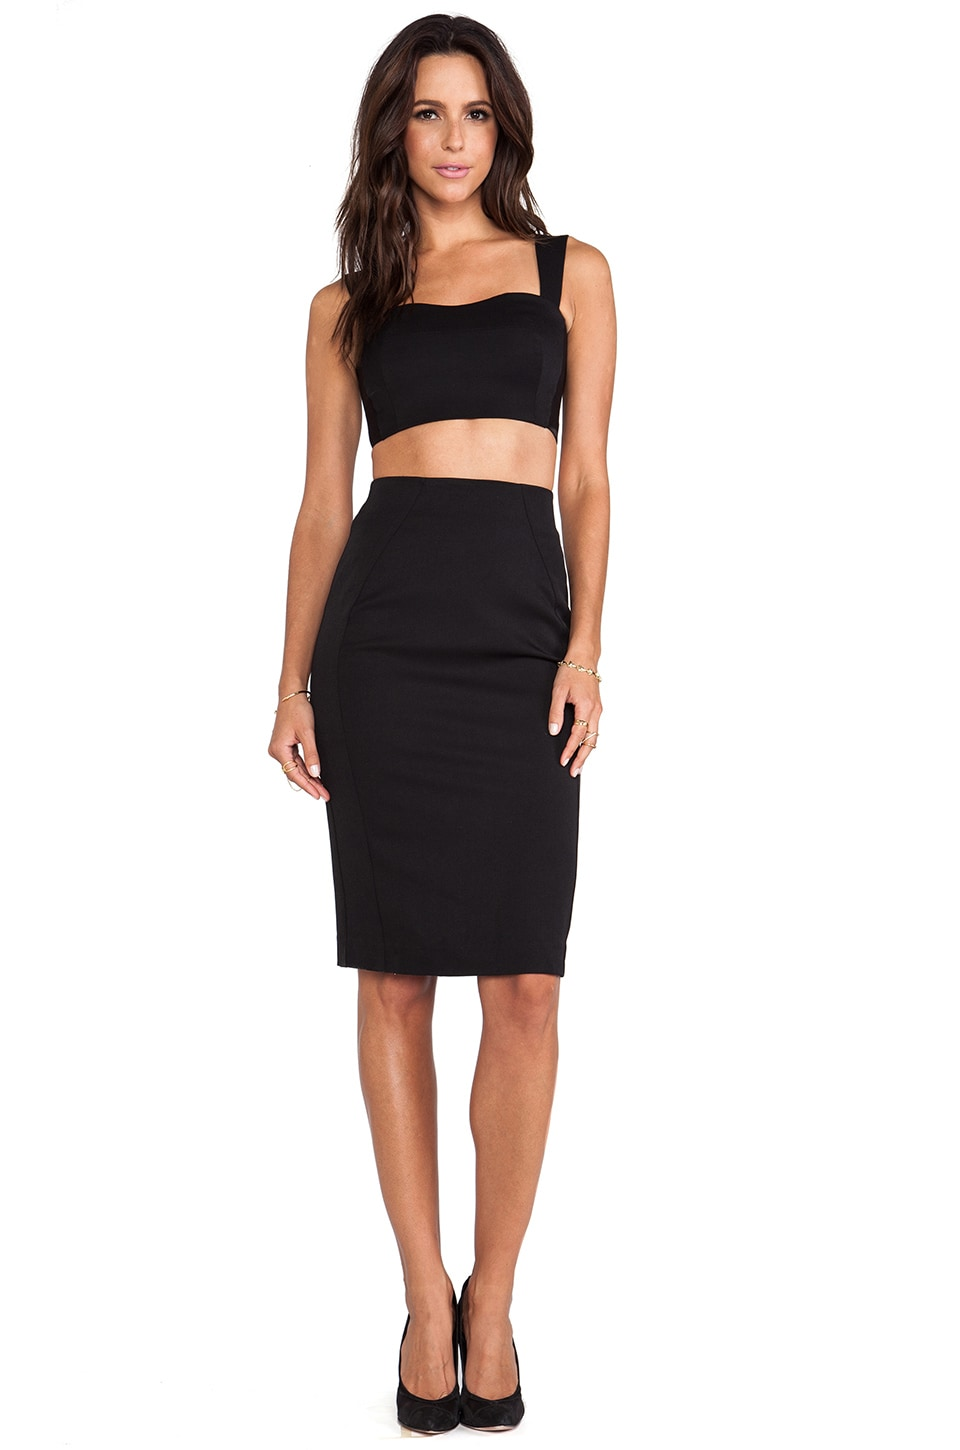 Black Halo Kayley 2 Piece Dress in Black